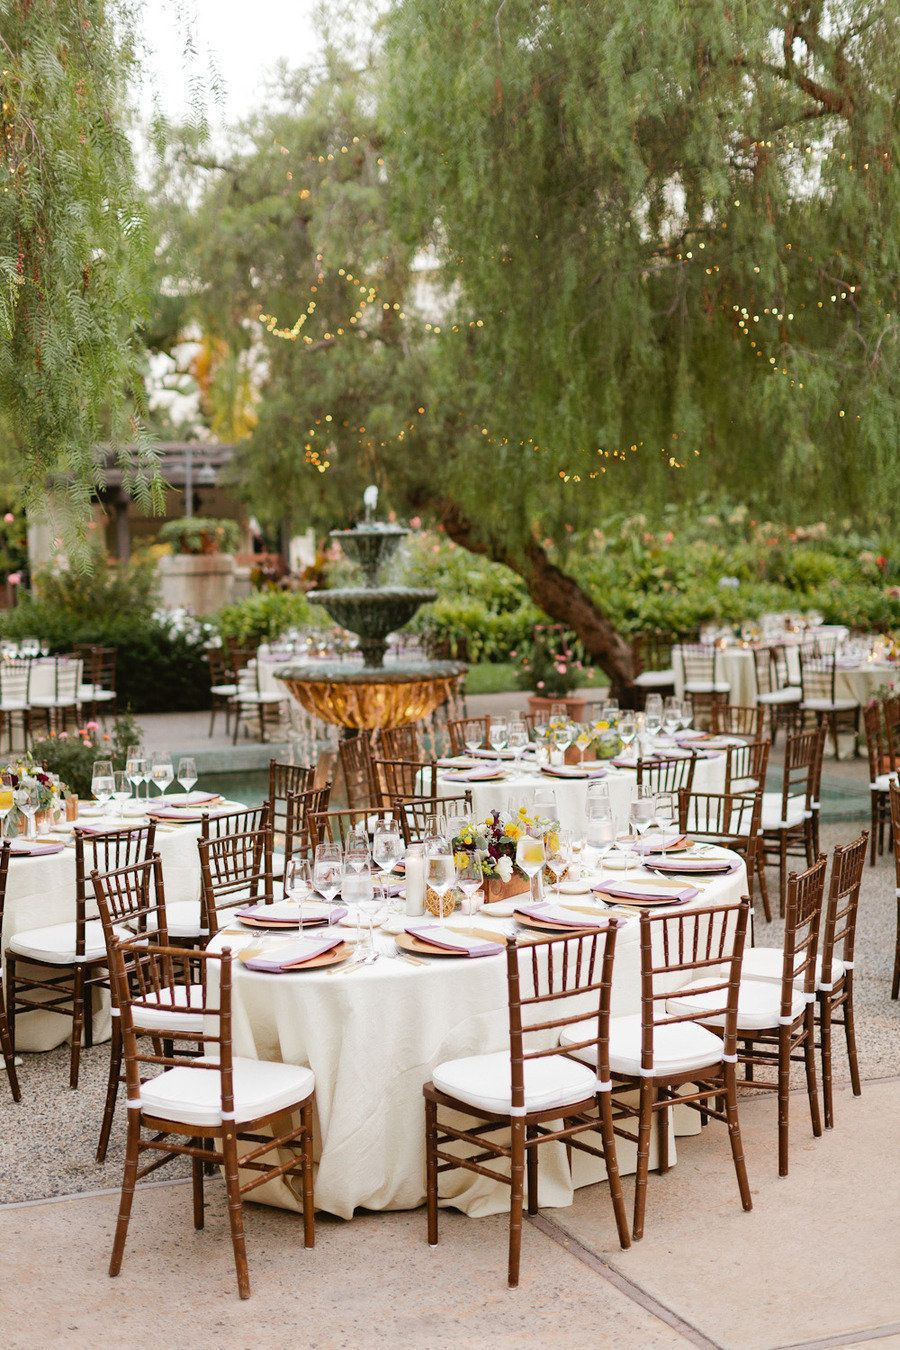 Los Angeles River Center and Gardens Wedding by Erin ...